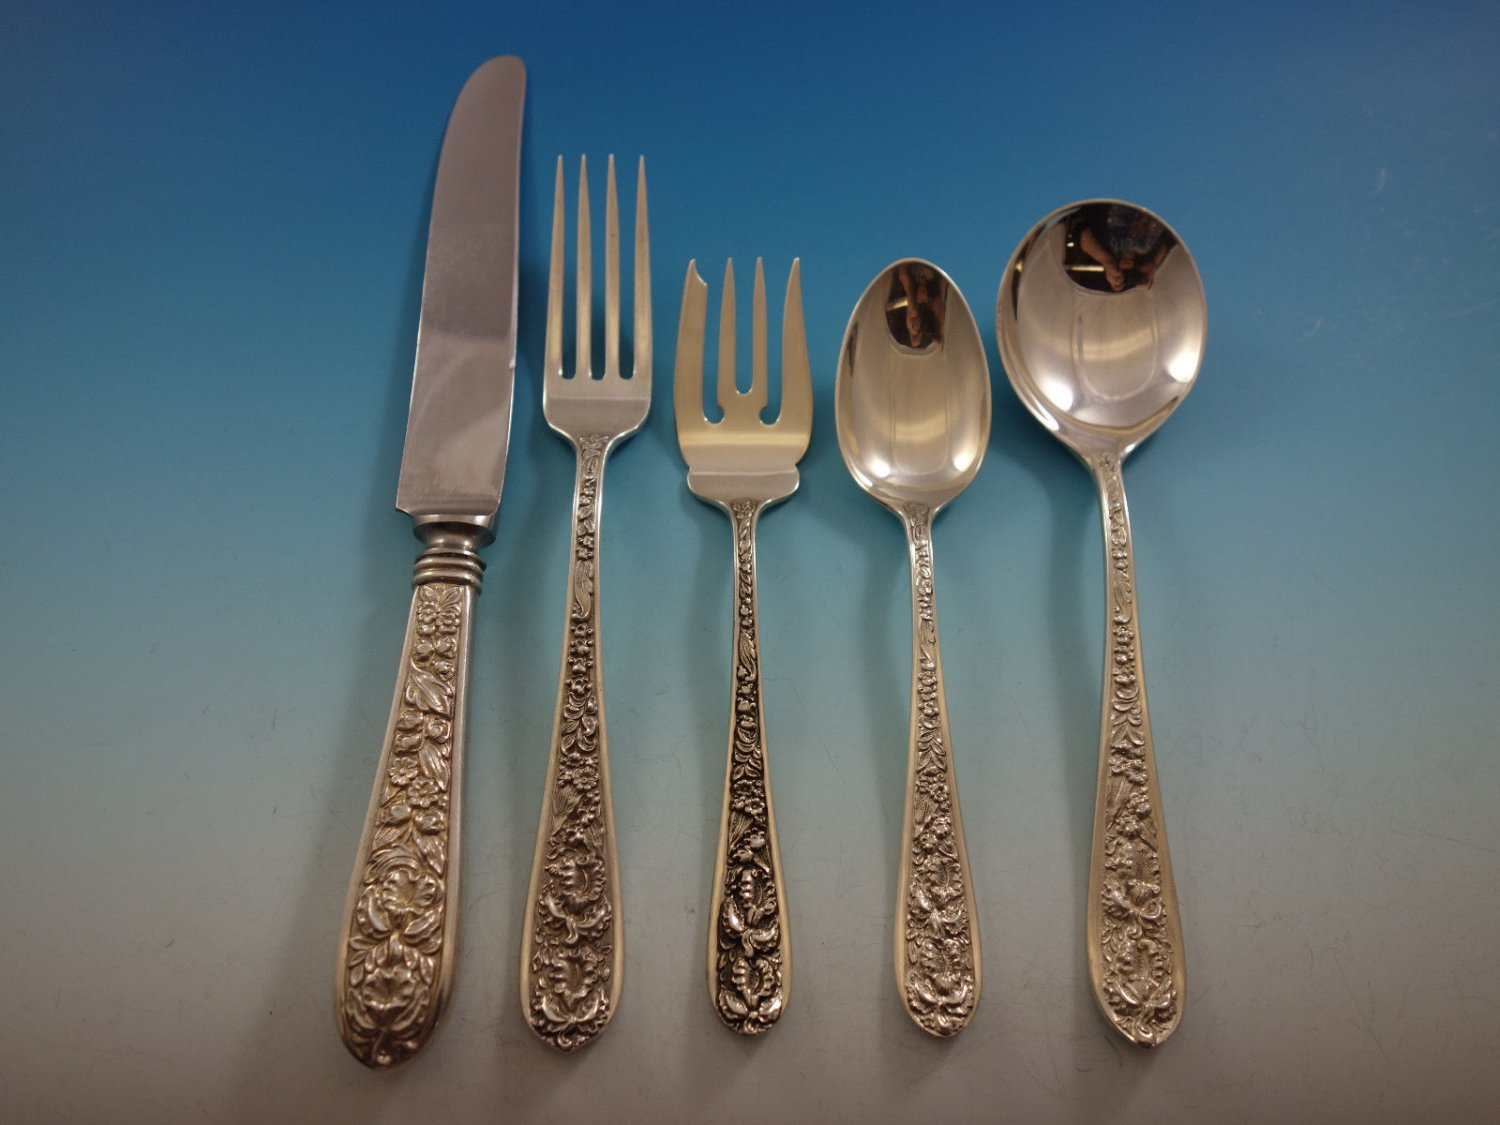 Corsage by Stieff Sterling Silver Flatware Set For 12 Service 62 Pieces